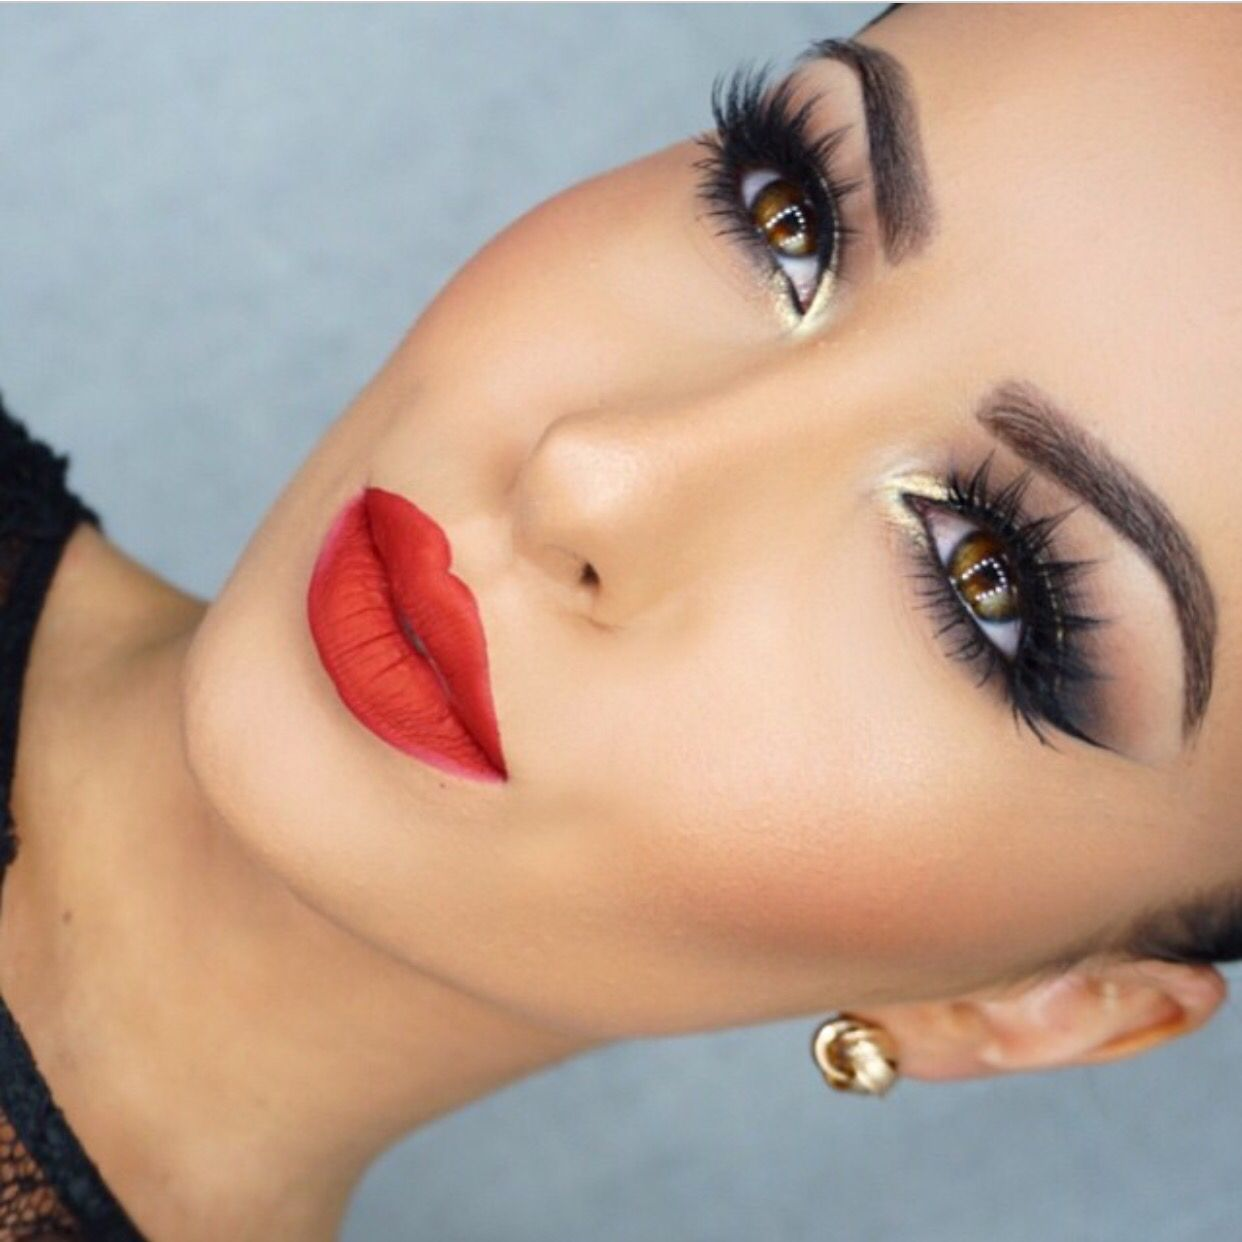 That red lipstick!! + perfect eyeshadow